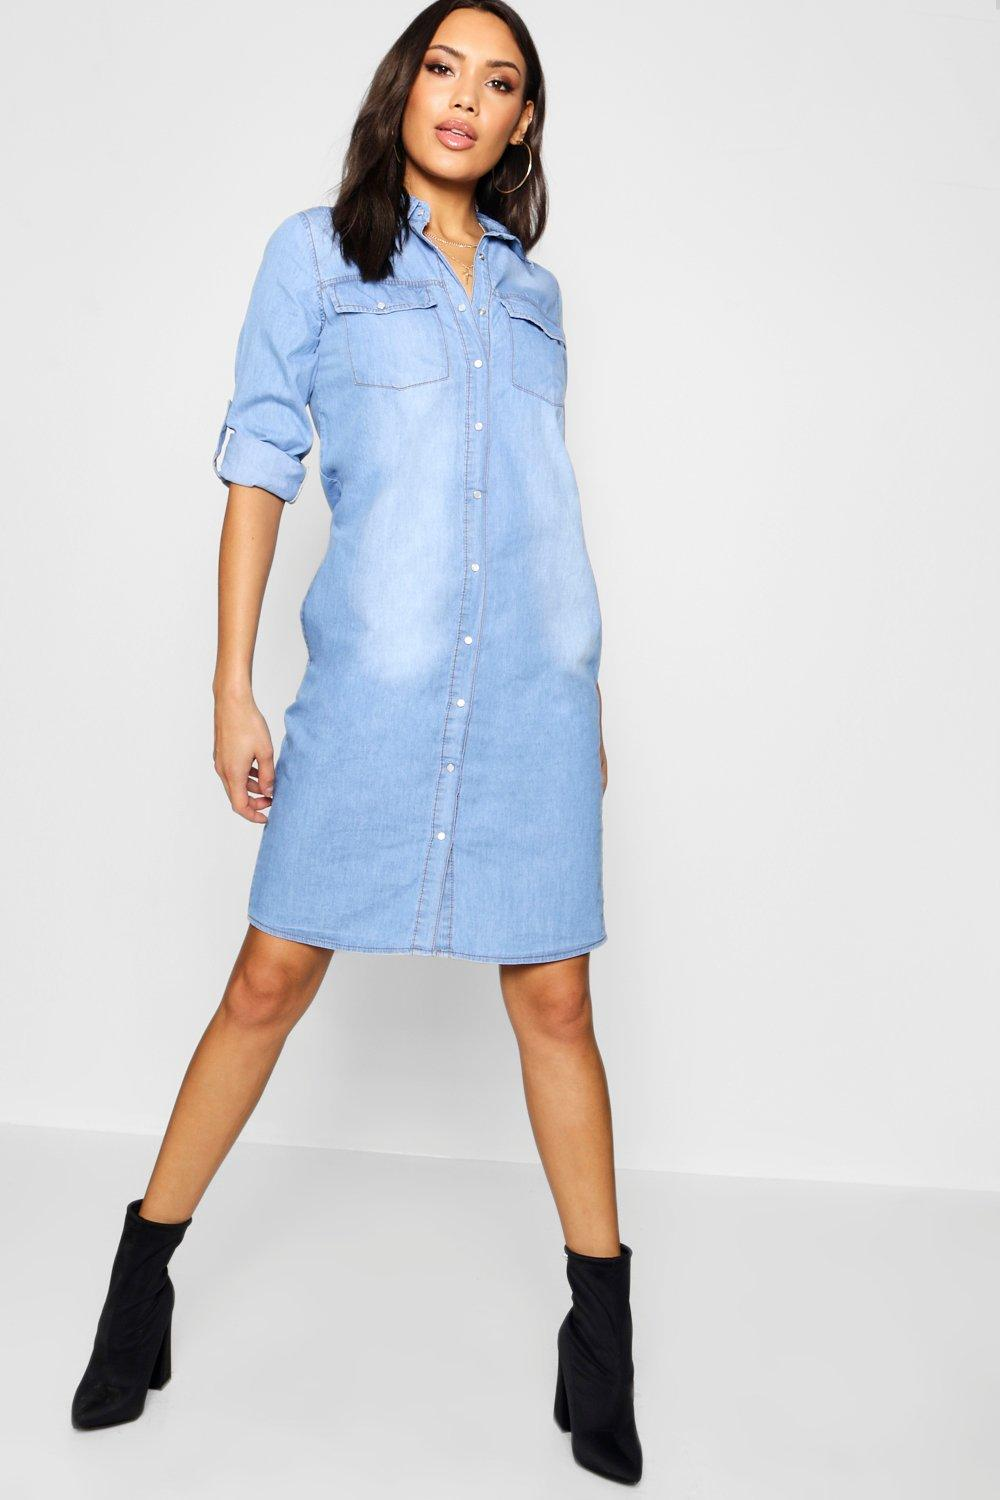 adf7d96d0e Western Denim Midi Dress. Hover to zoom